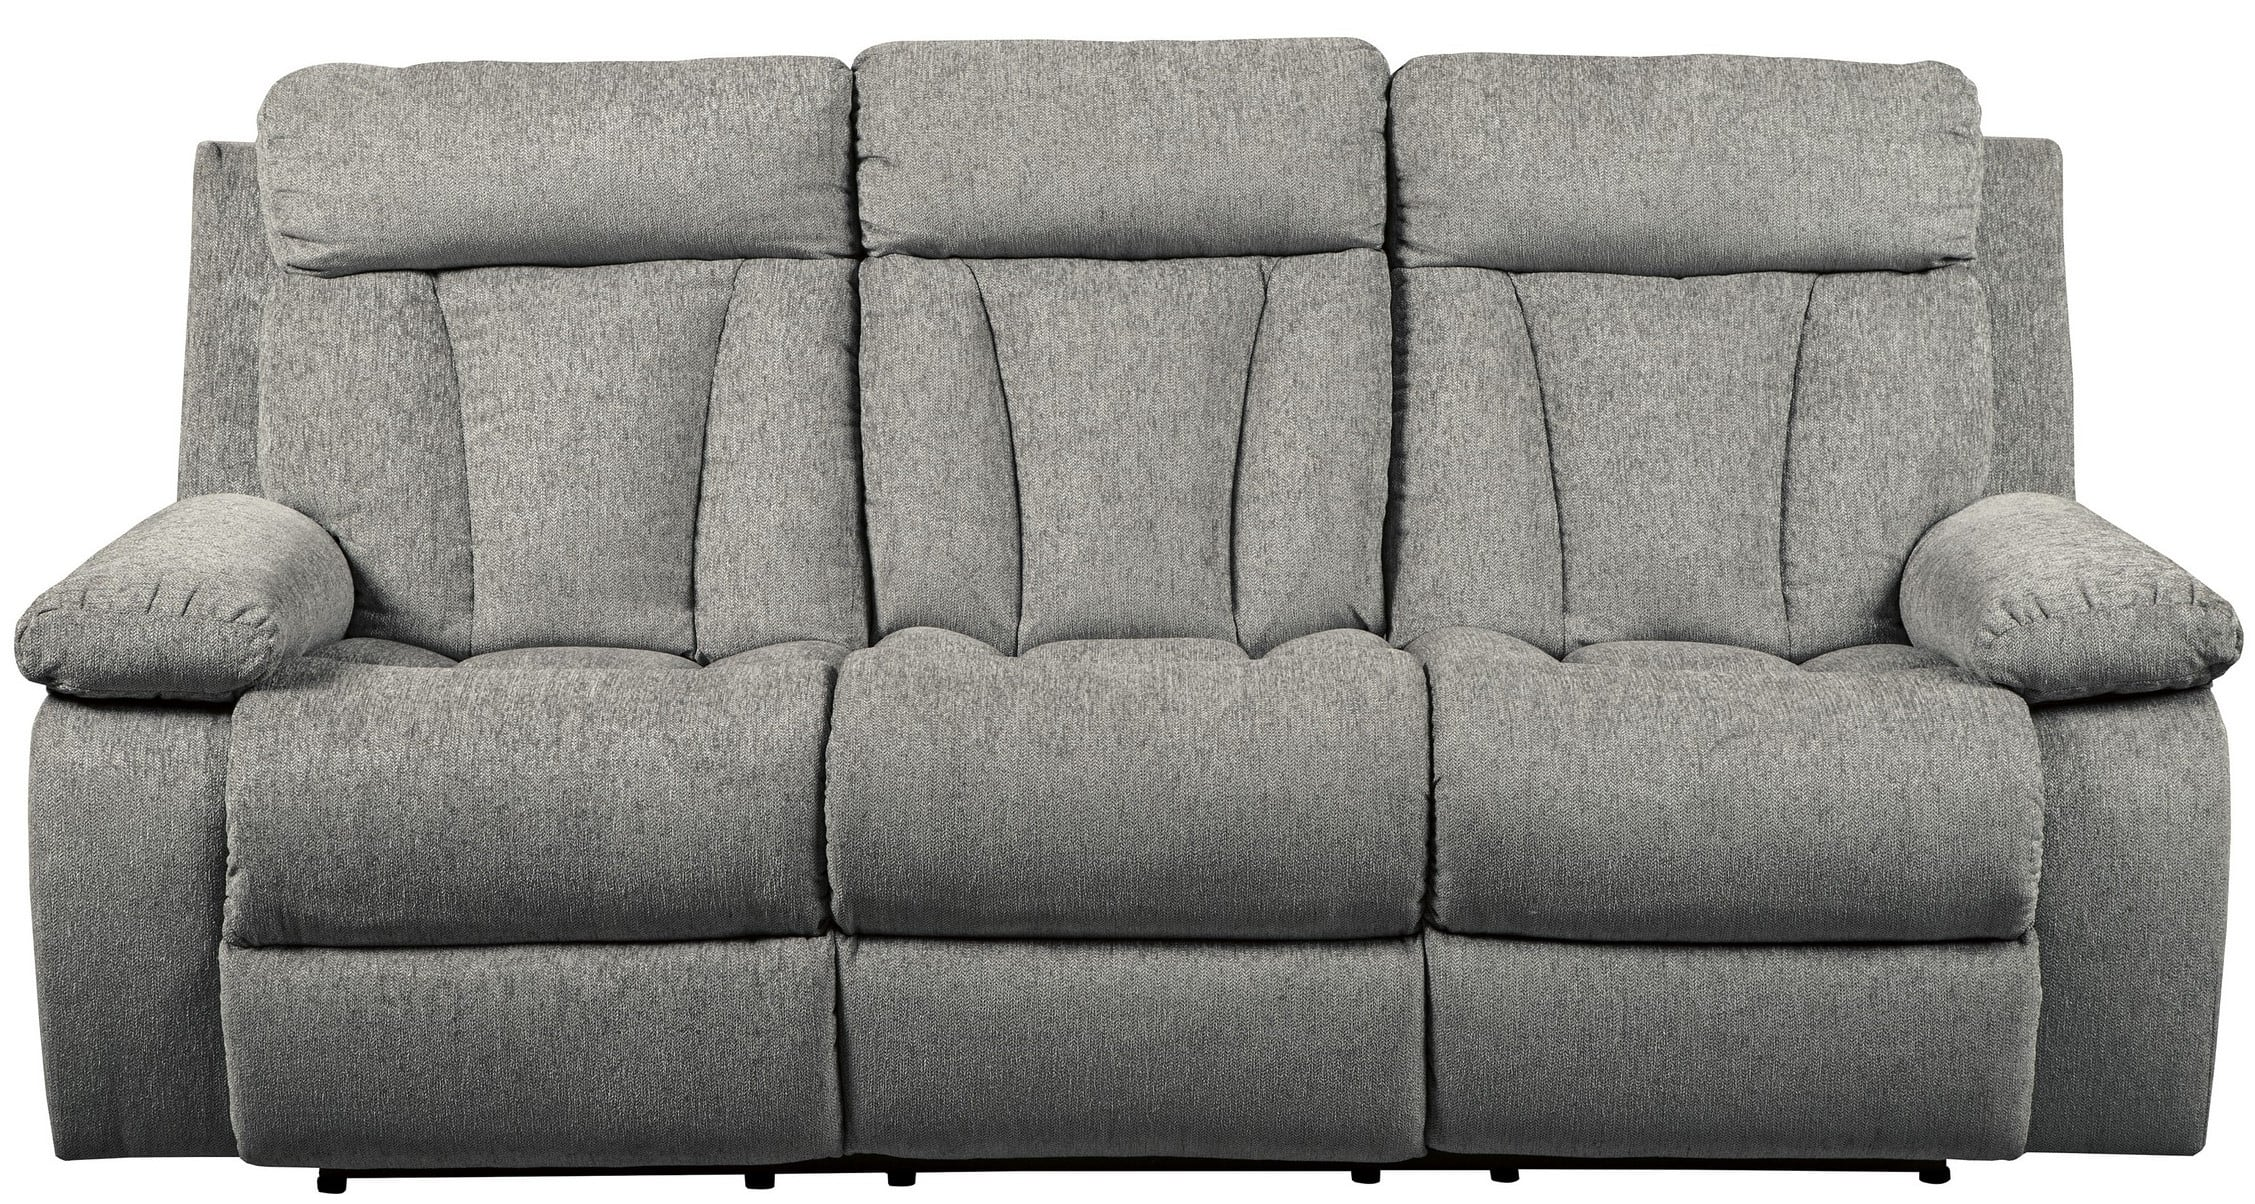 Signature Design By Ashley Mitchiner Gray Reclining Sofa With Drop